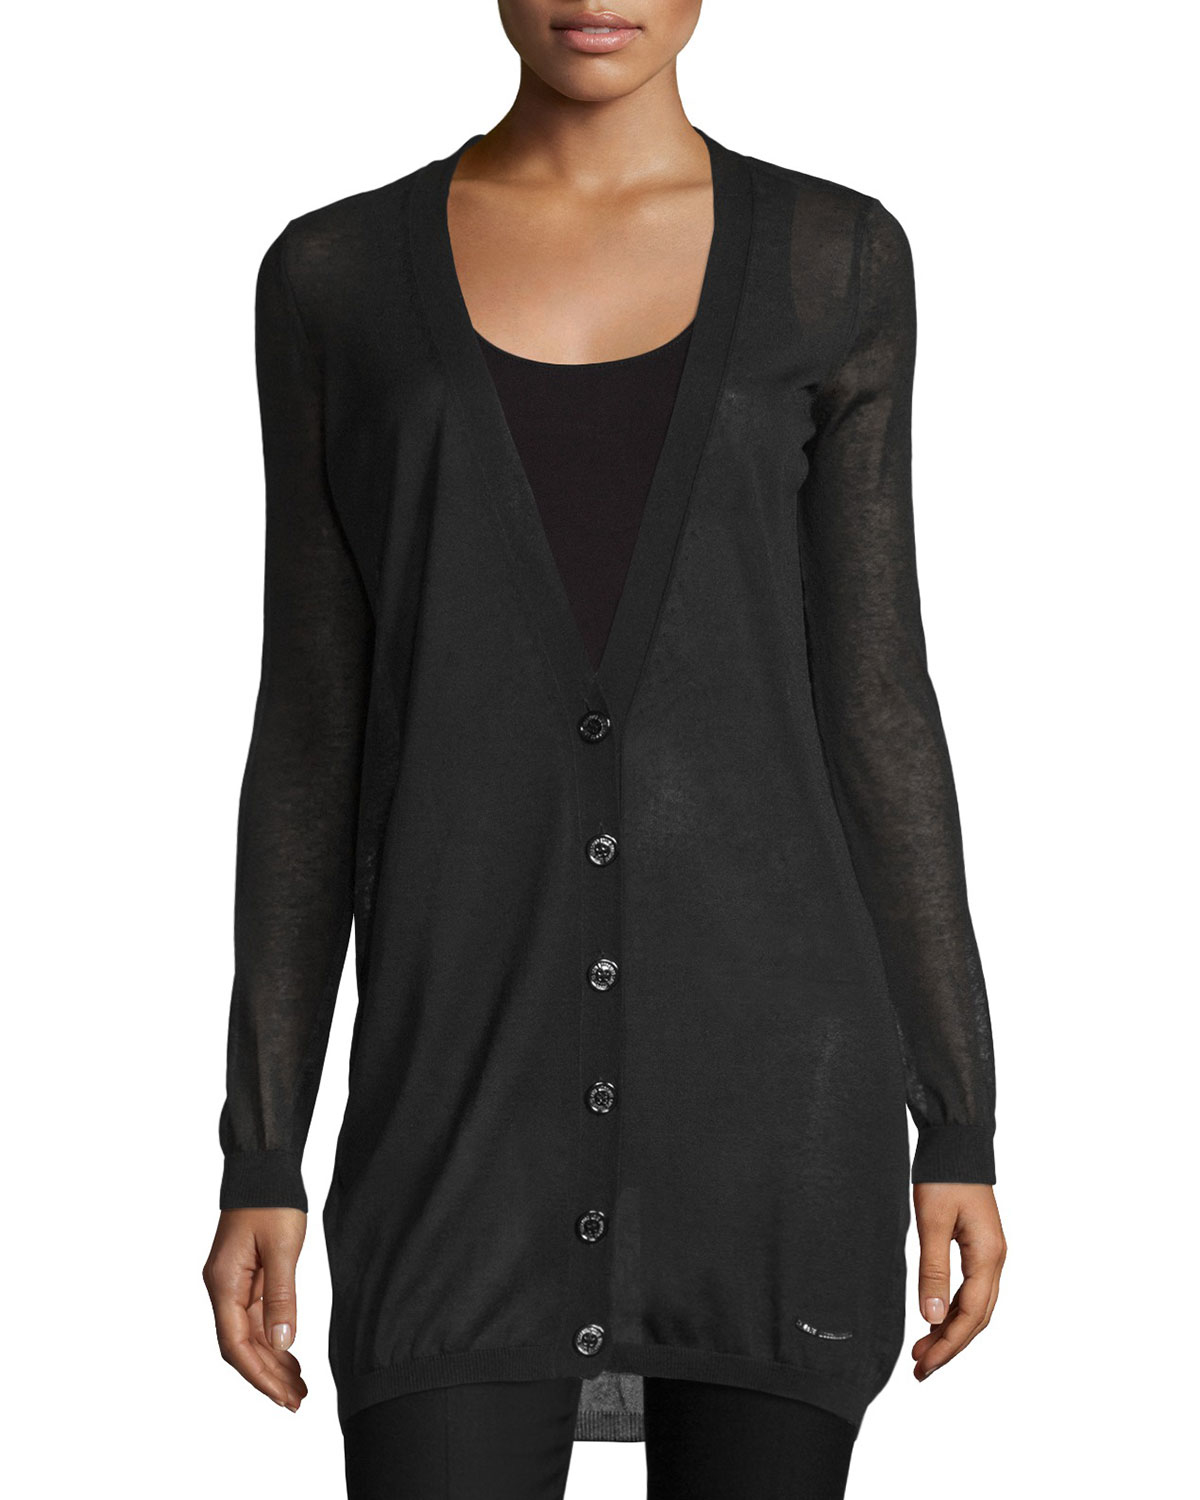 Love moschino Button-front Semi-sheer Cardigan in Black | Lyst